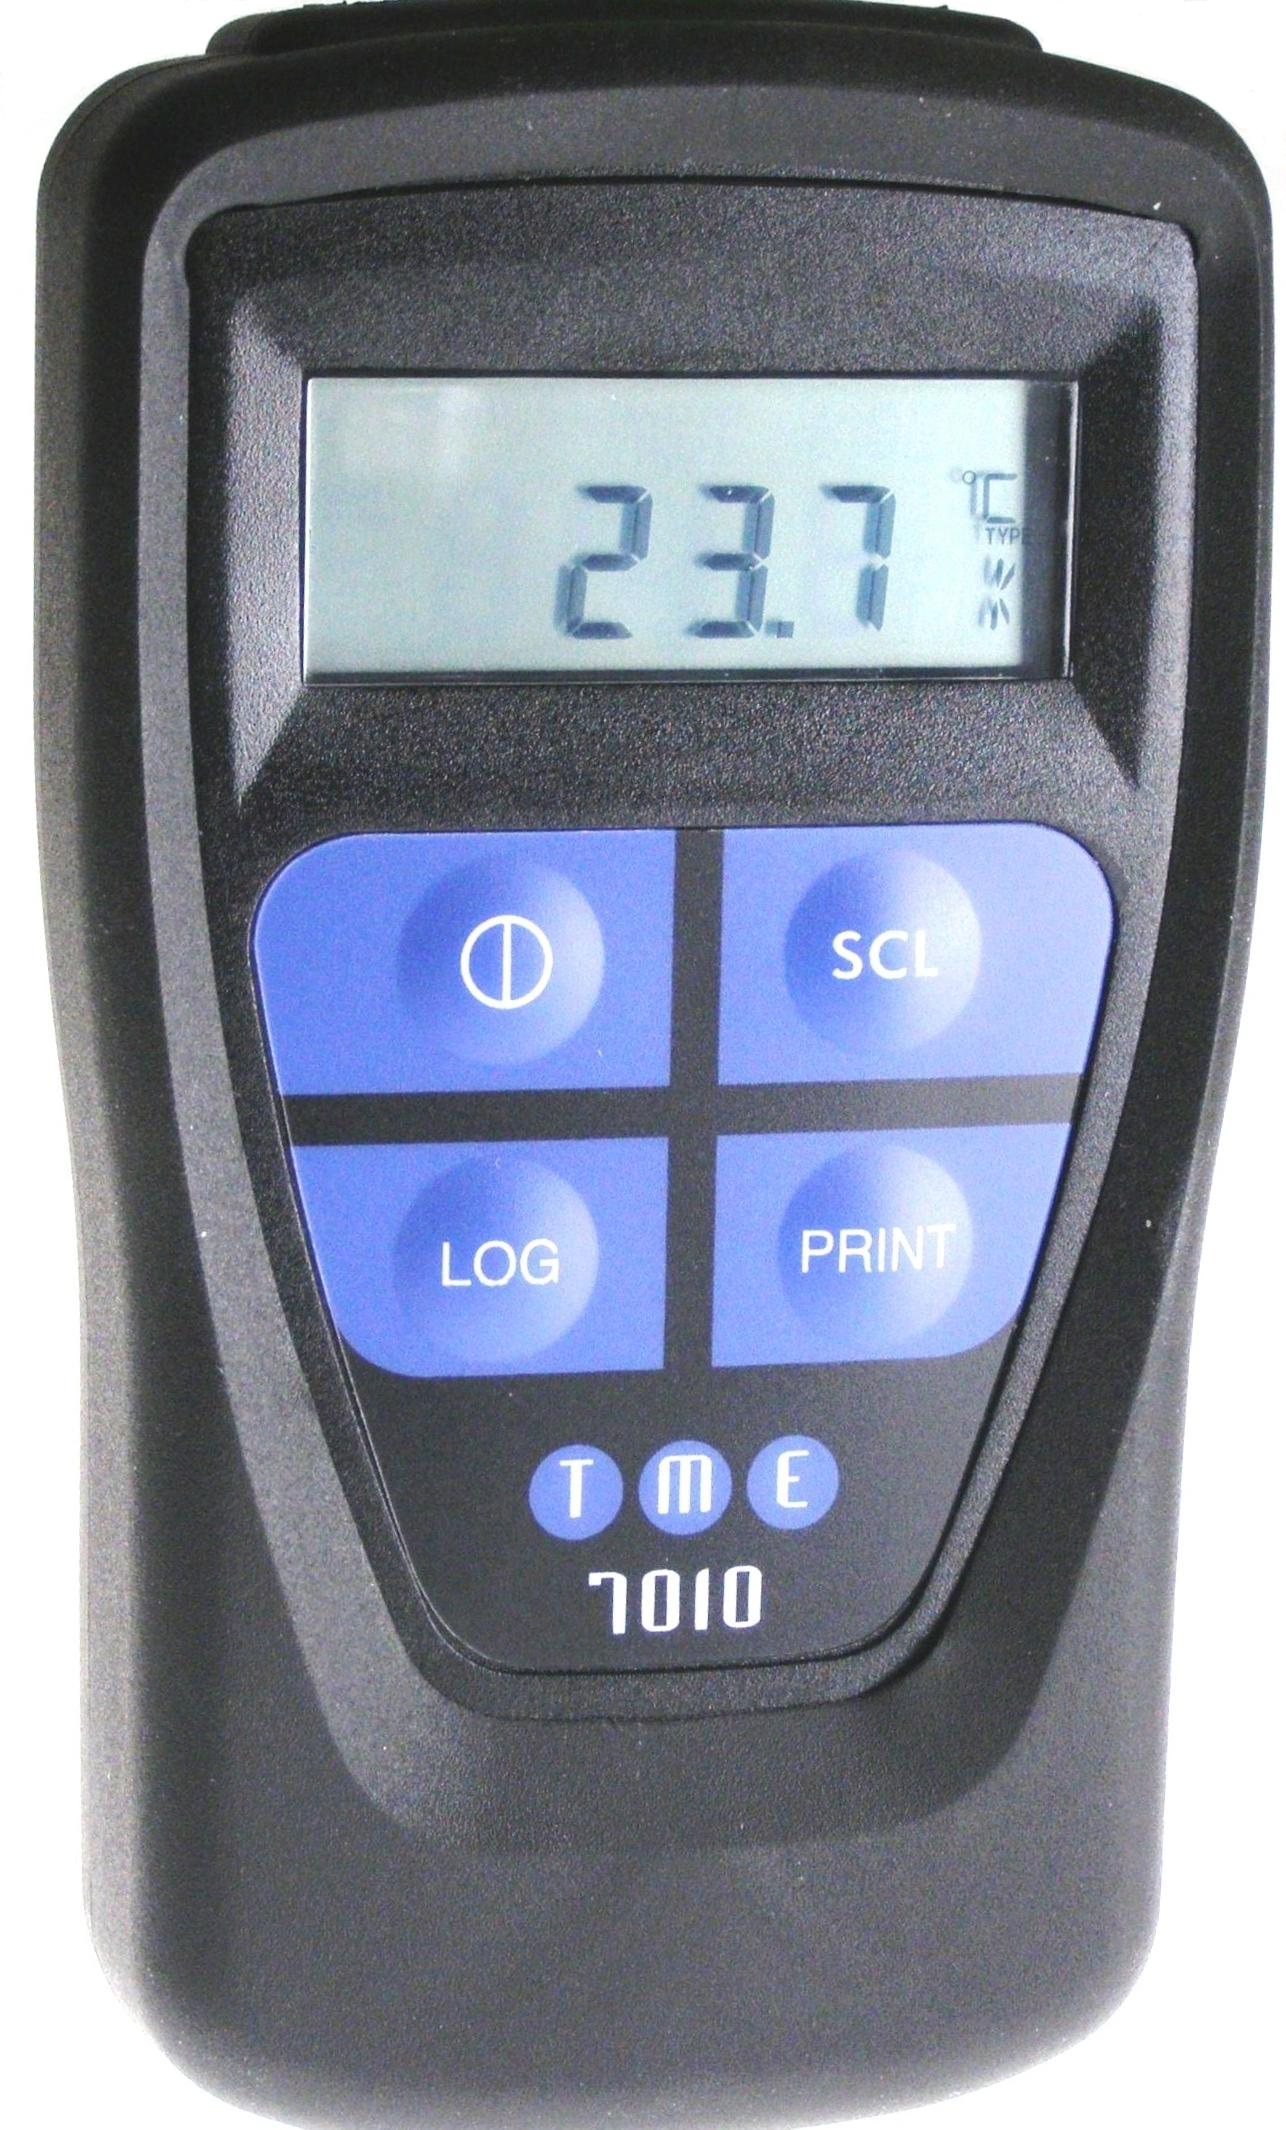 This Waterproof, Self-Calibrating thermometer can log up to 250 timed and dated temperature records....